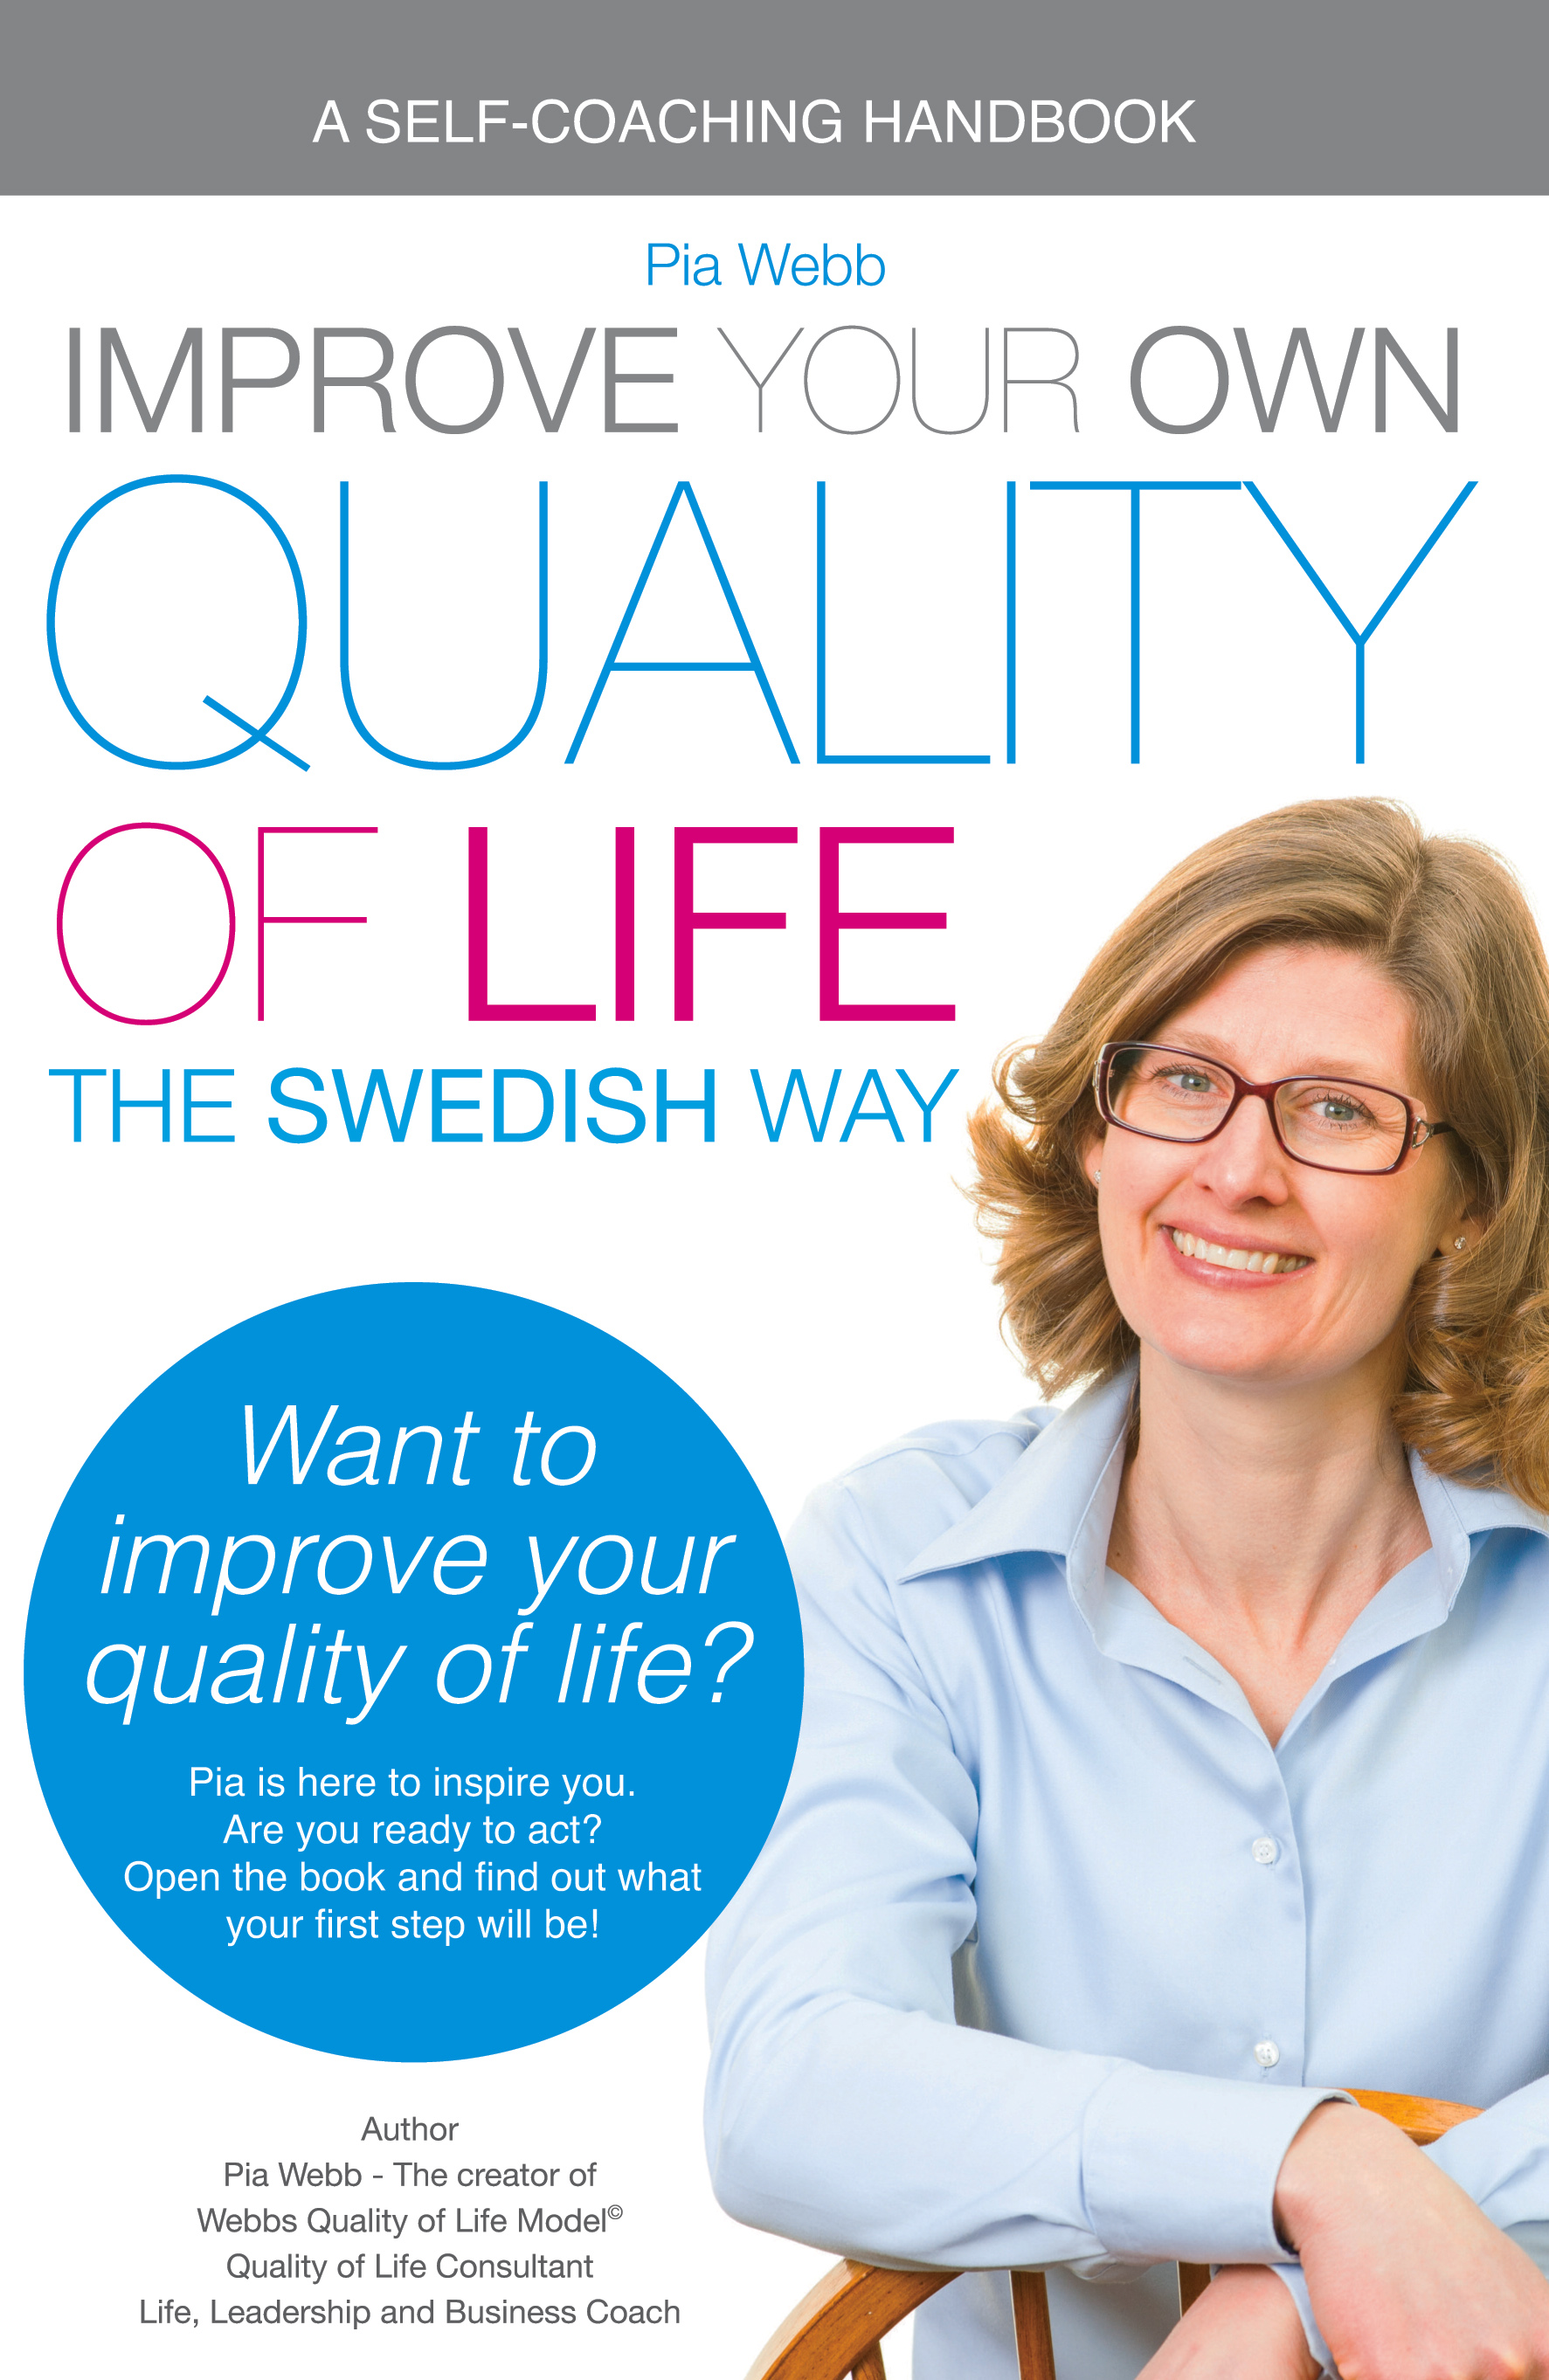 Improving the quality of your own life